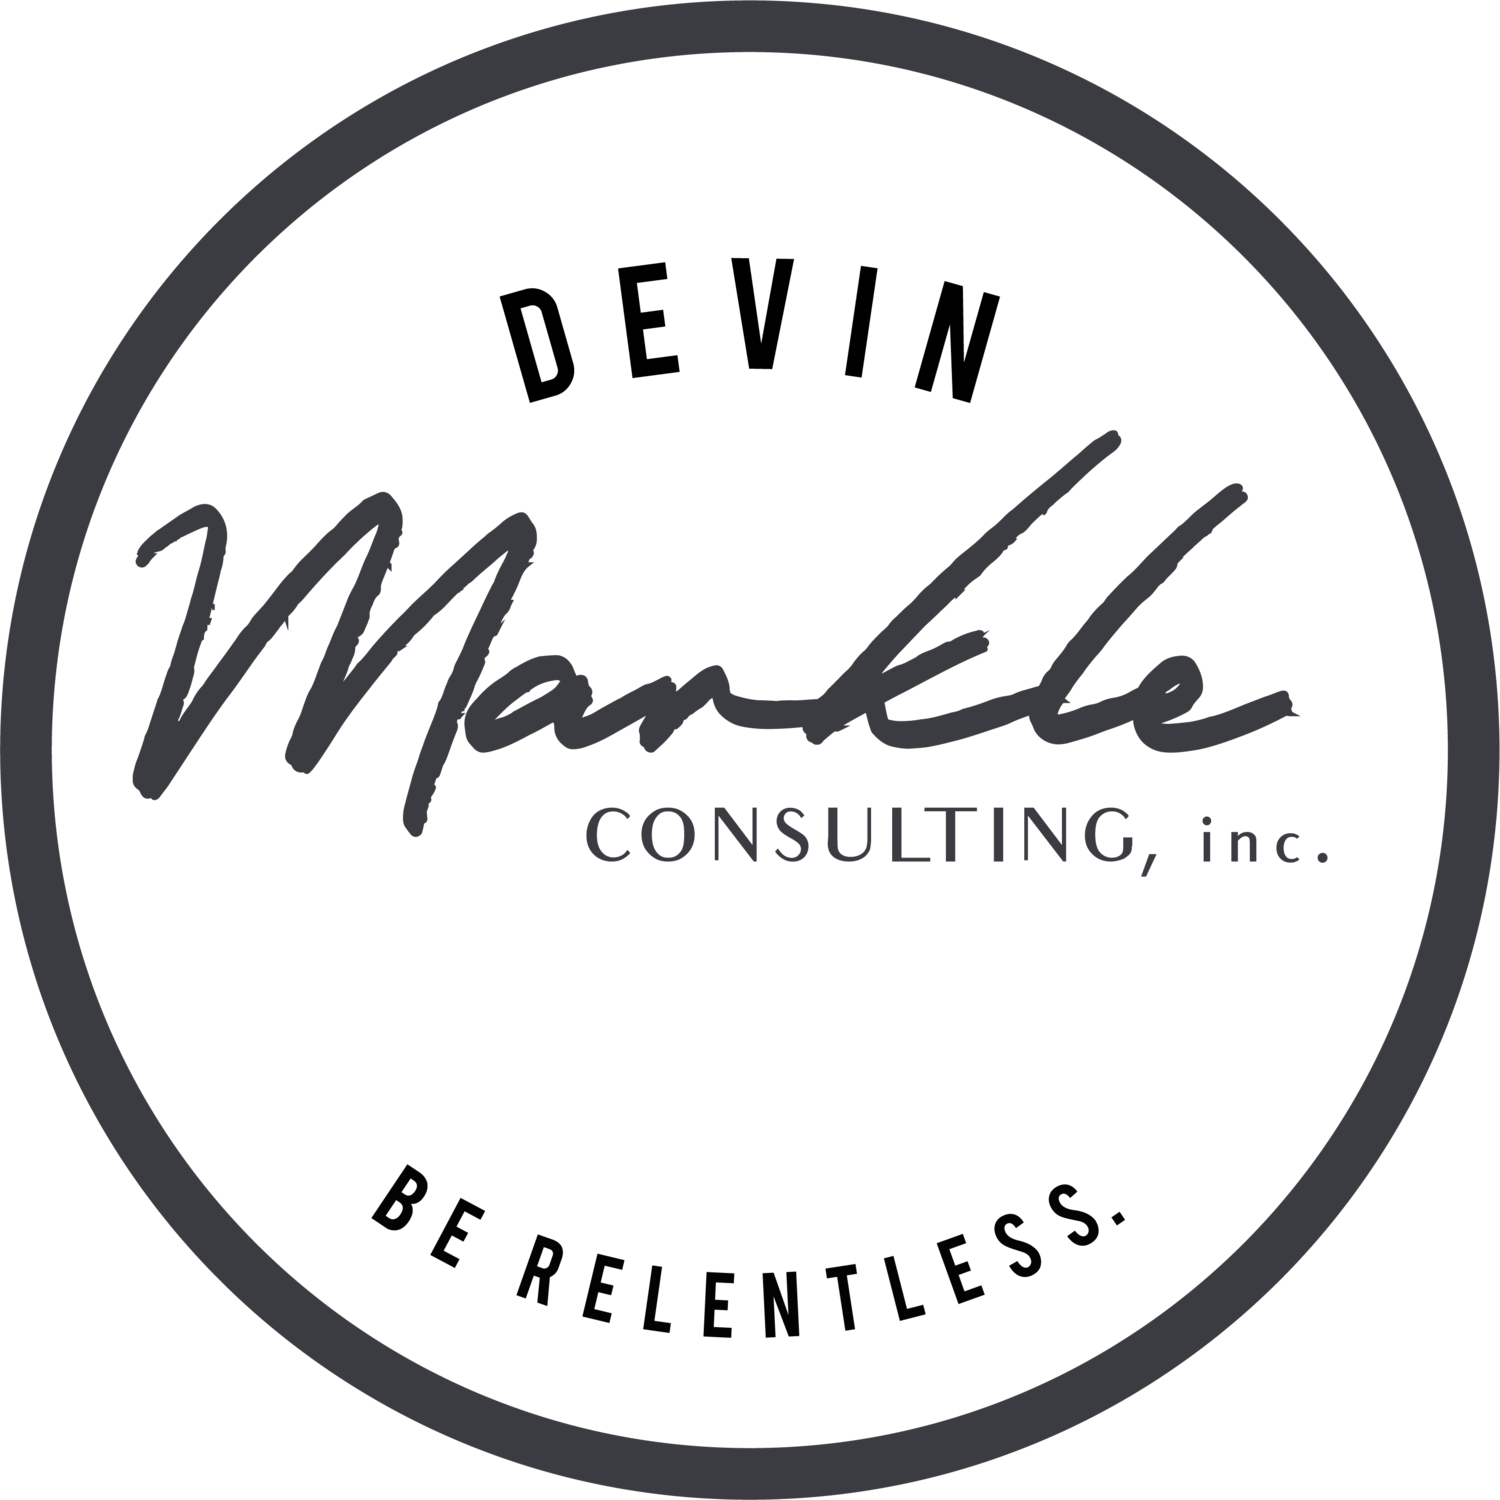 Devin Markle Consulting, Inc.